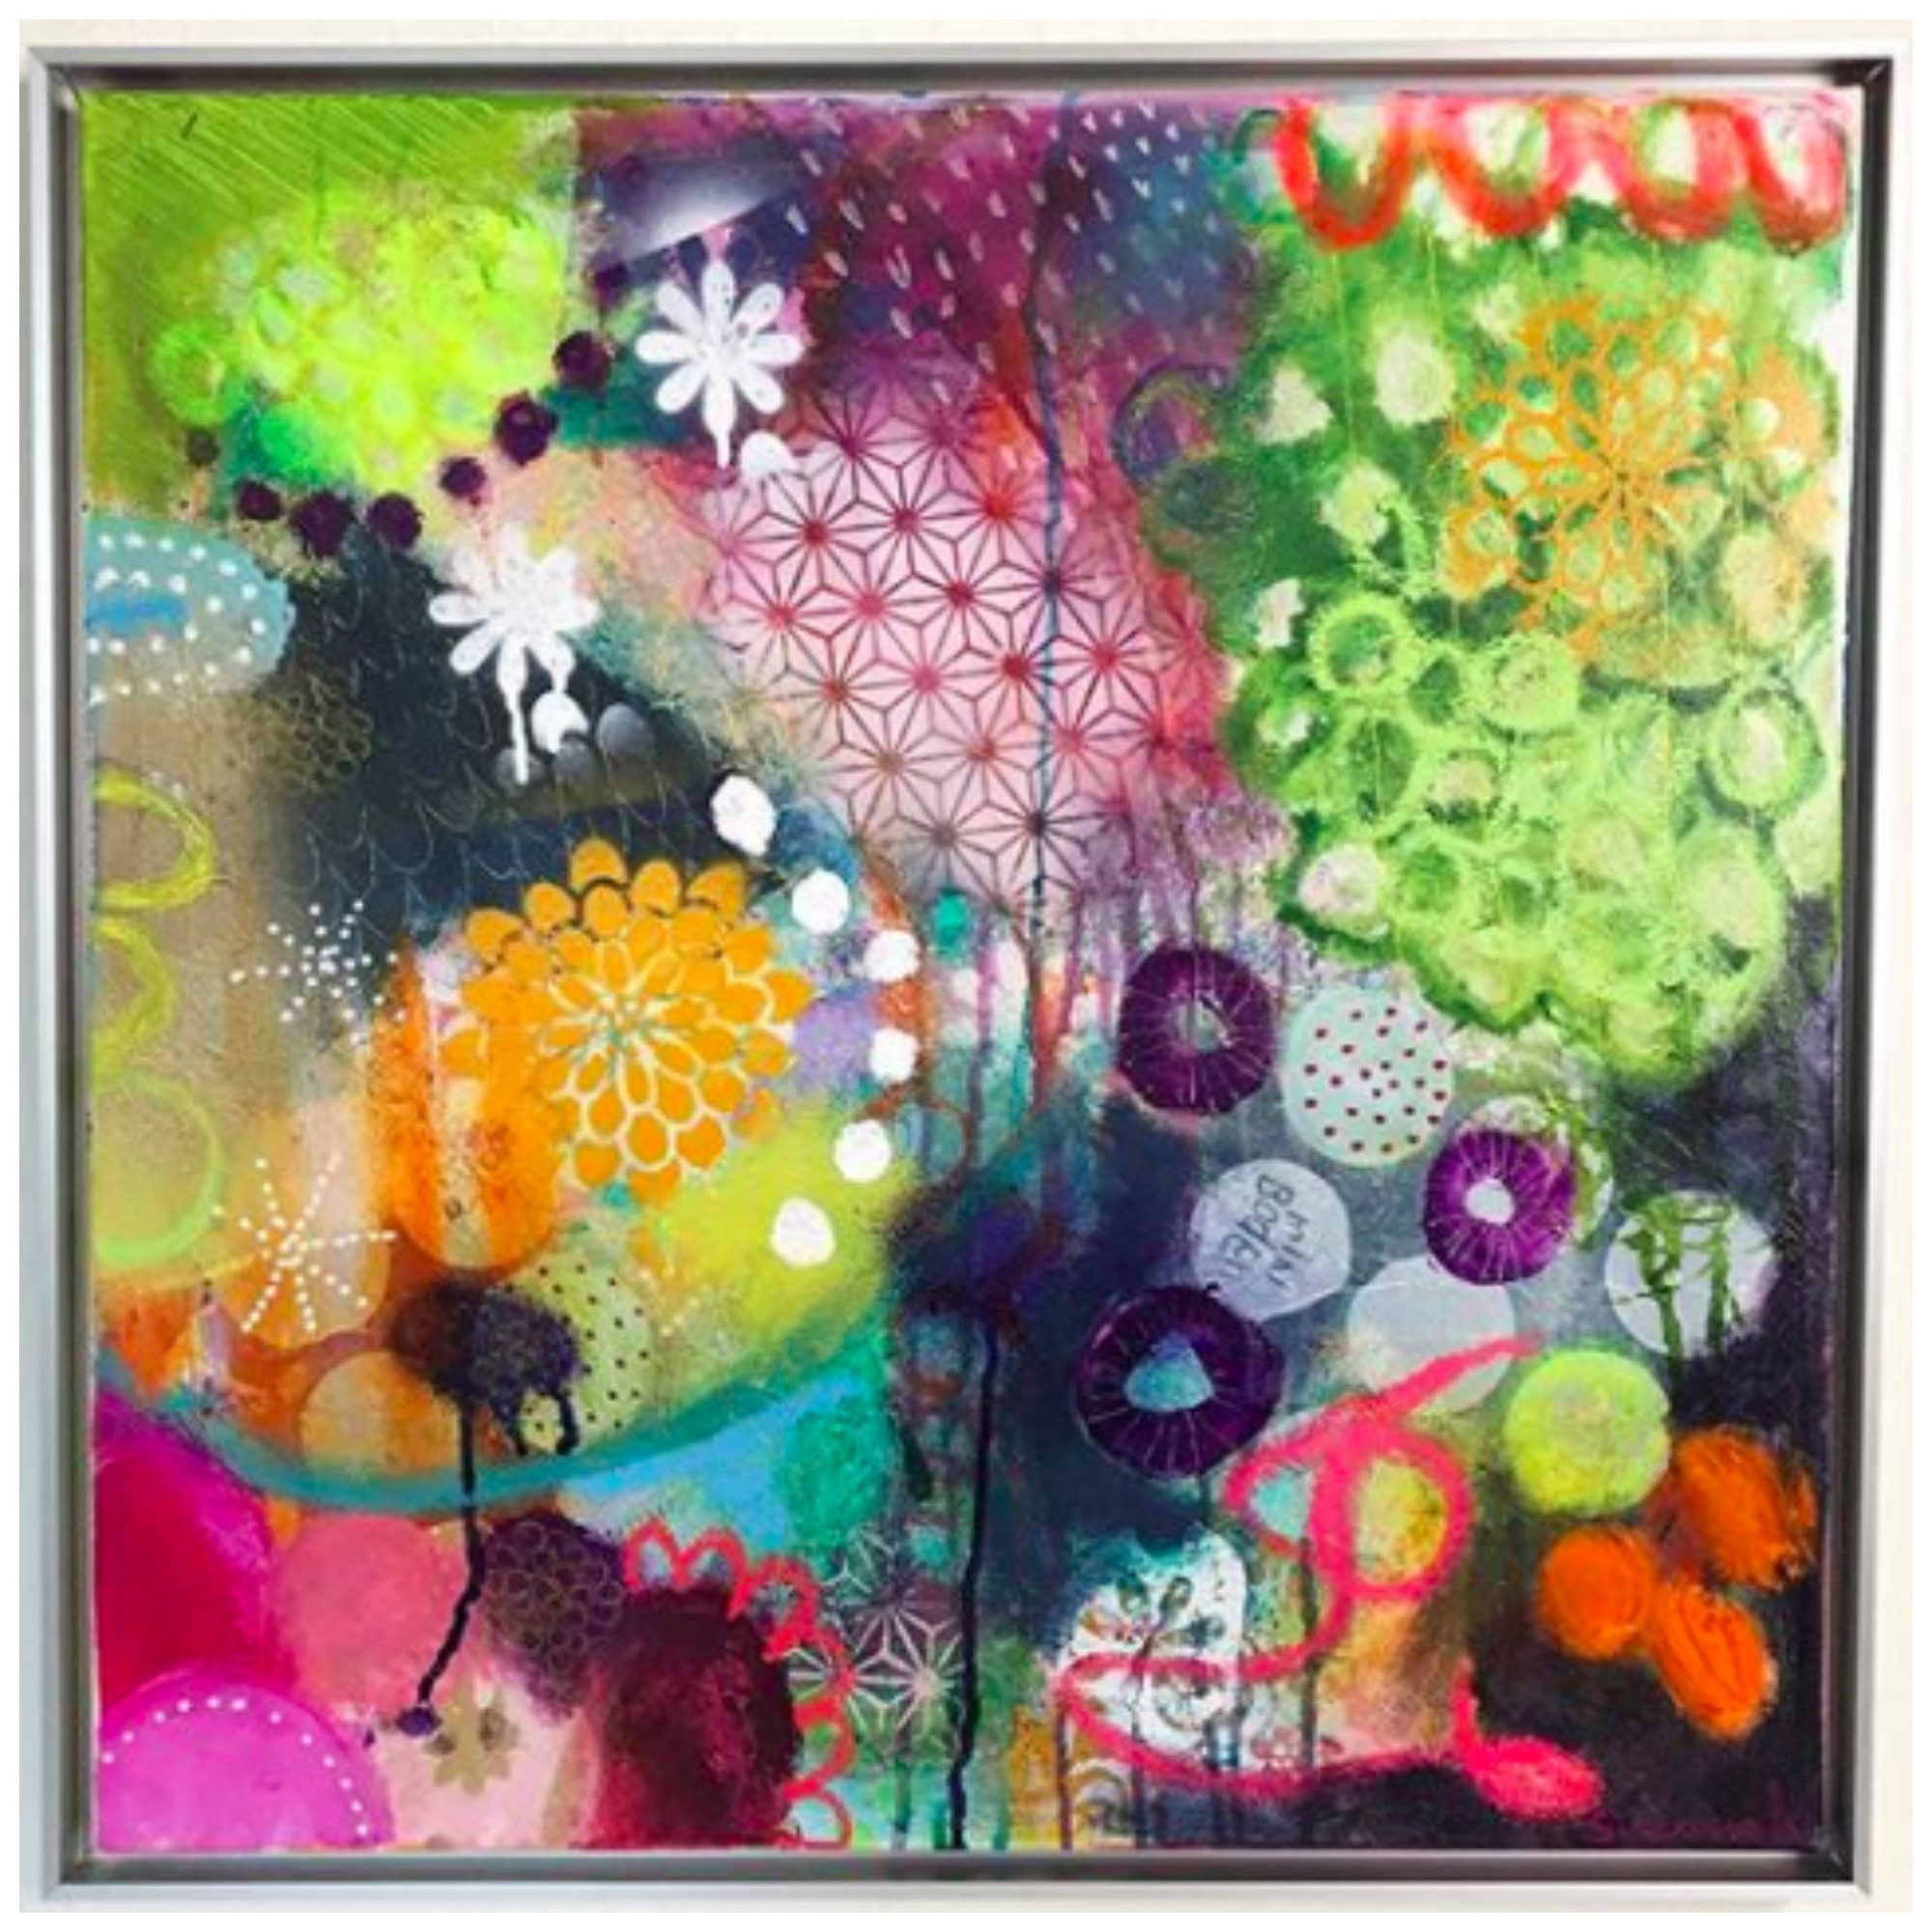 Artist Interview: Susanne Kurwig's Colorful Nature Inspired Floral Media Media Art Will Take You On A Journey Of Joyful Emotions